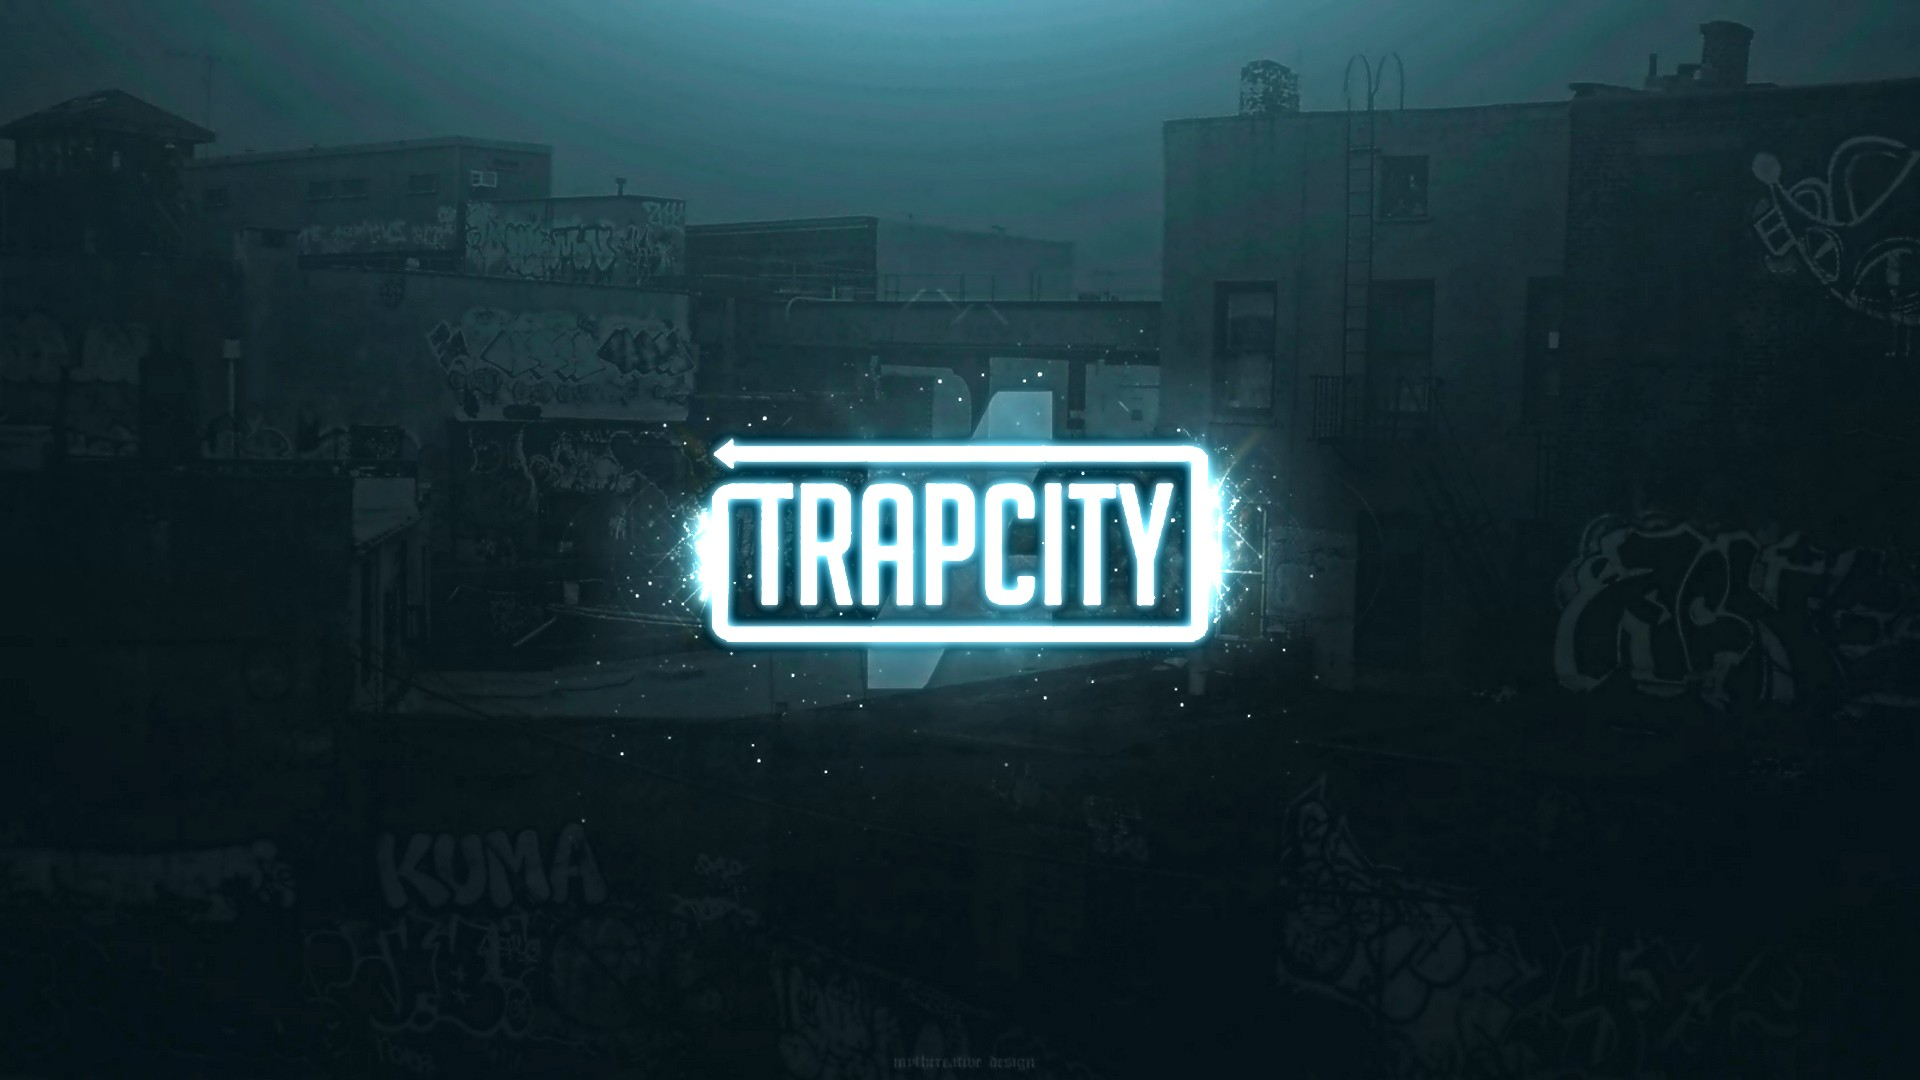 Trapcity Hd Typography 4k Wallpapers Images Backgrounds Photos